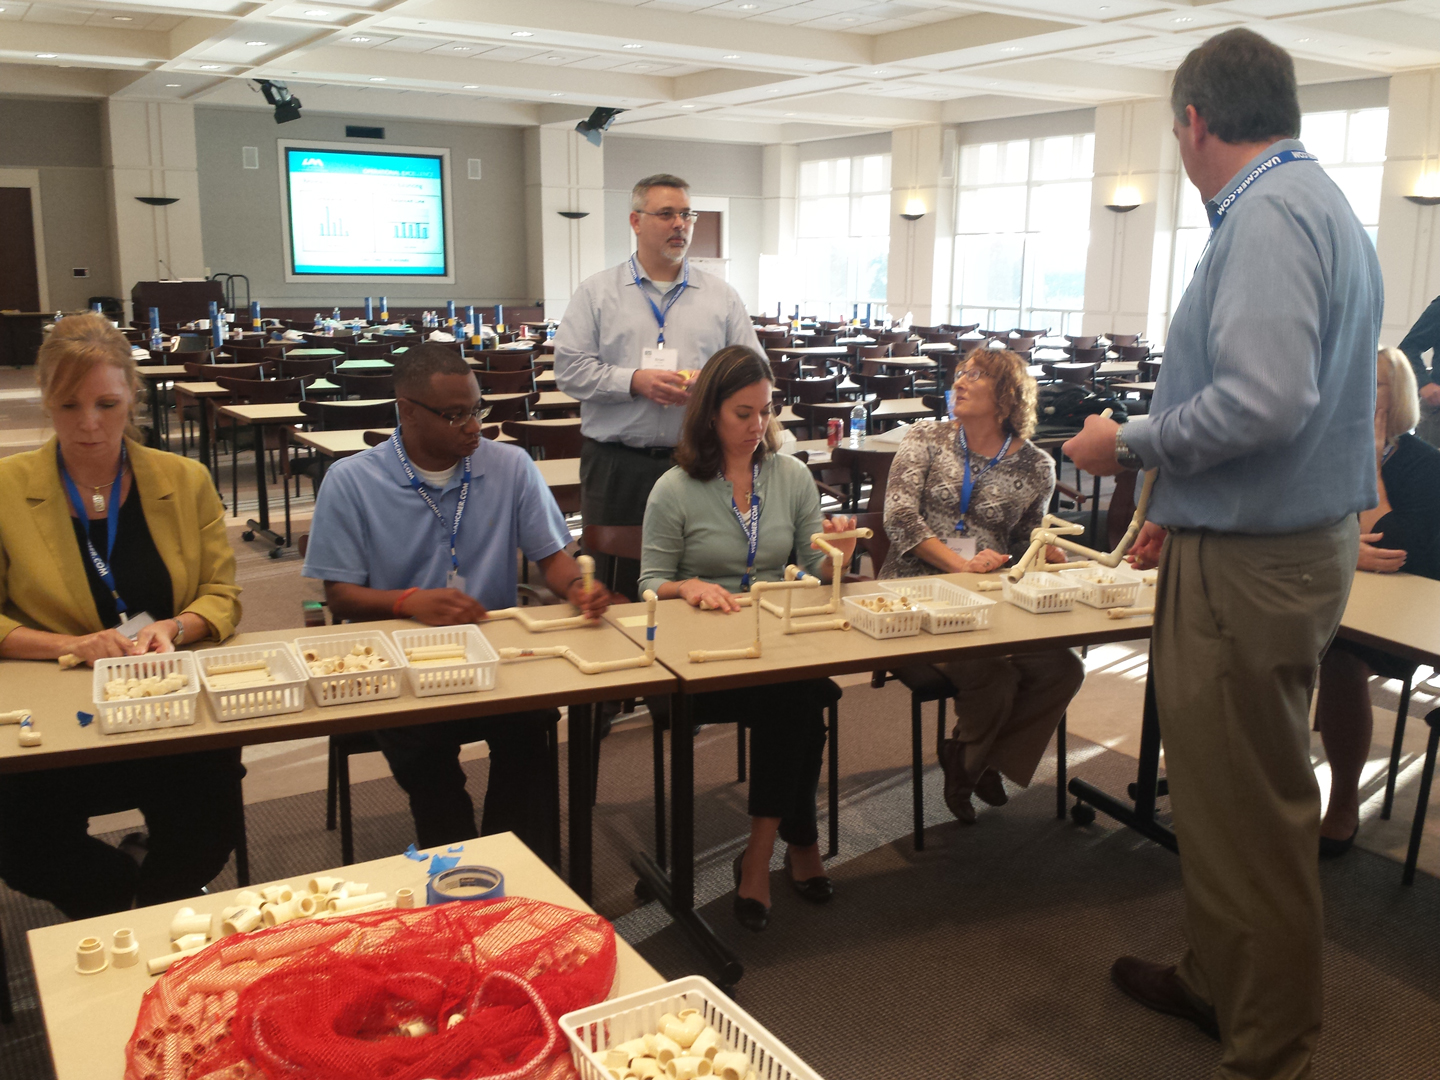 OOE Lean Six Sigma Practitioners Brian Tucker and Joe Paxton assist students during the LSS Yellow Belt Simulation at the Alabama LSS Conference 2015.